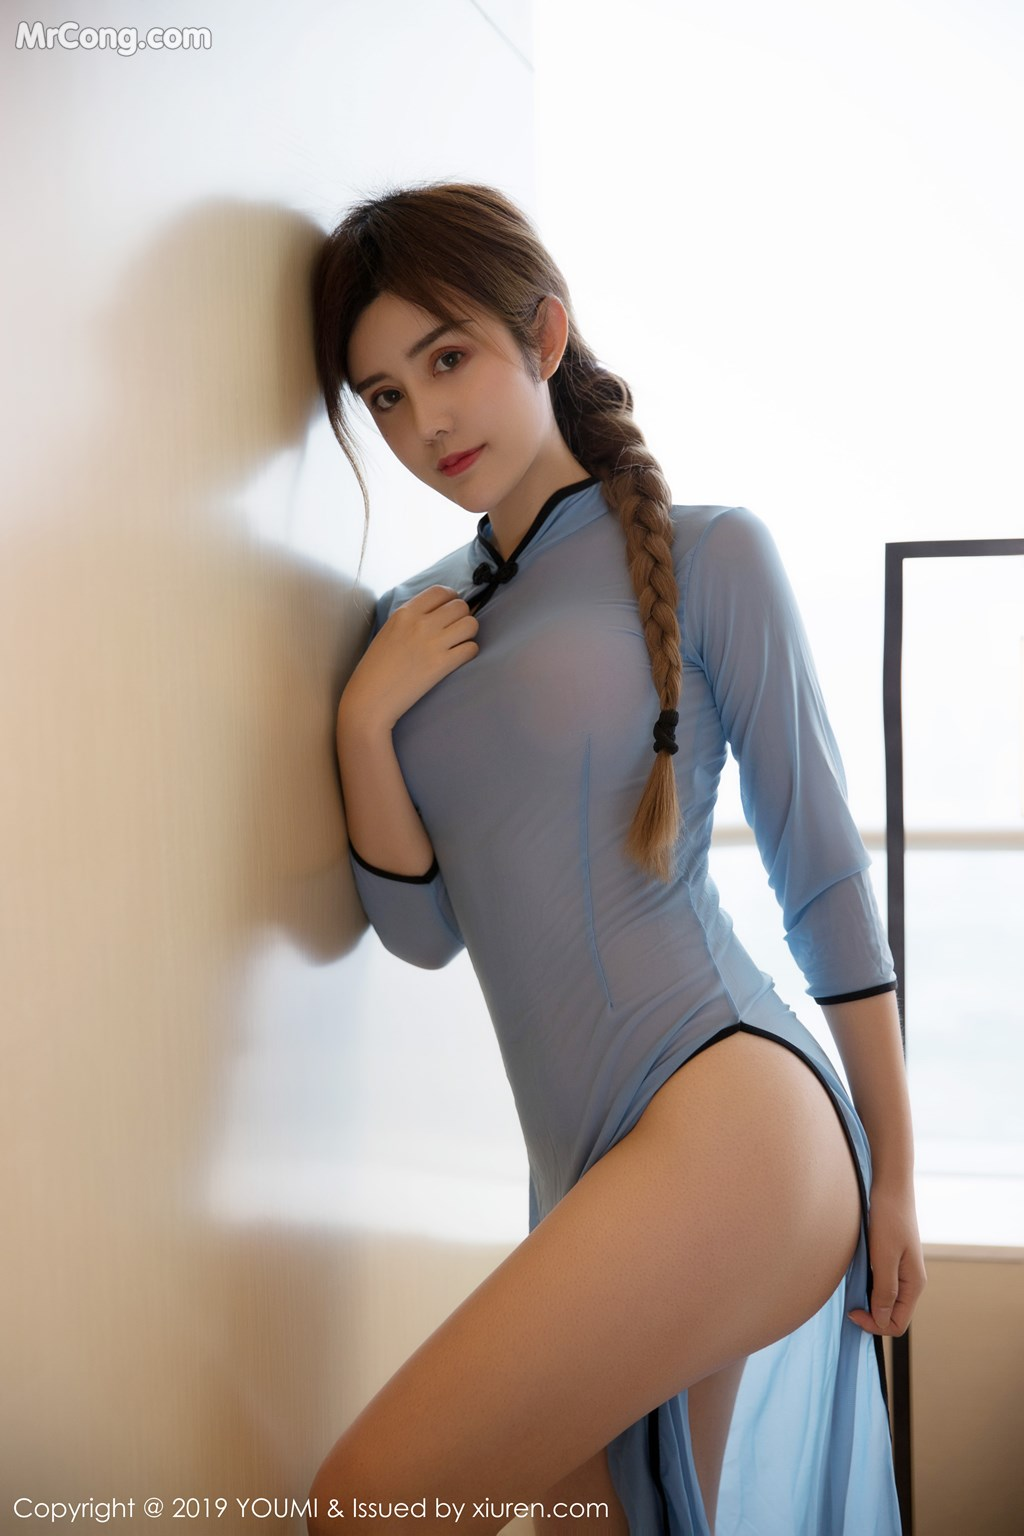 Image YouMi-Vol.353-Cris-MrCong.com-006 in post YouMi Vol.353: Cris_卓娅祺 (51 ảnh)